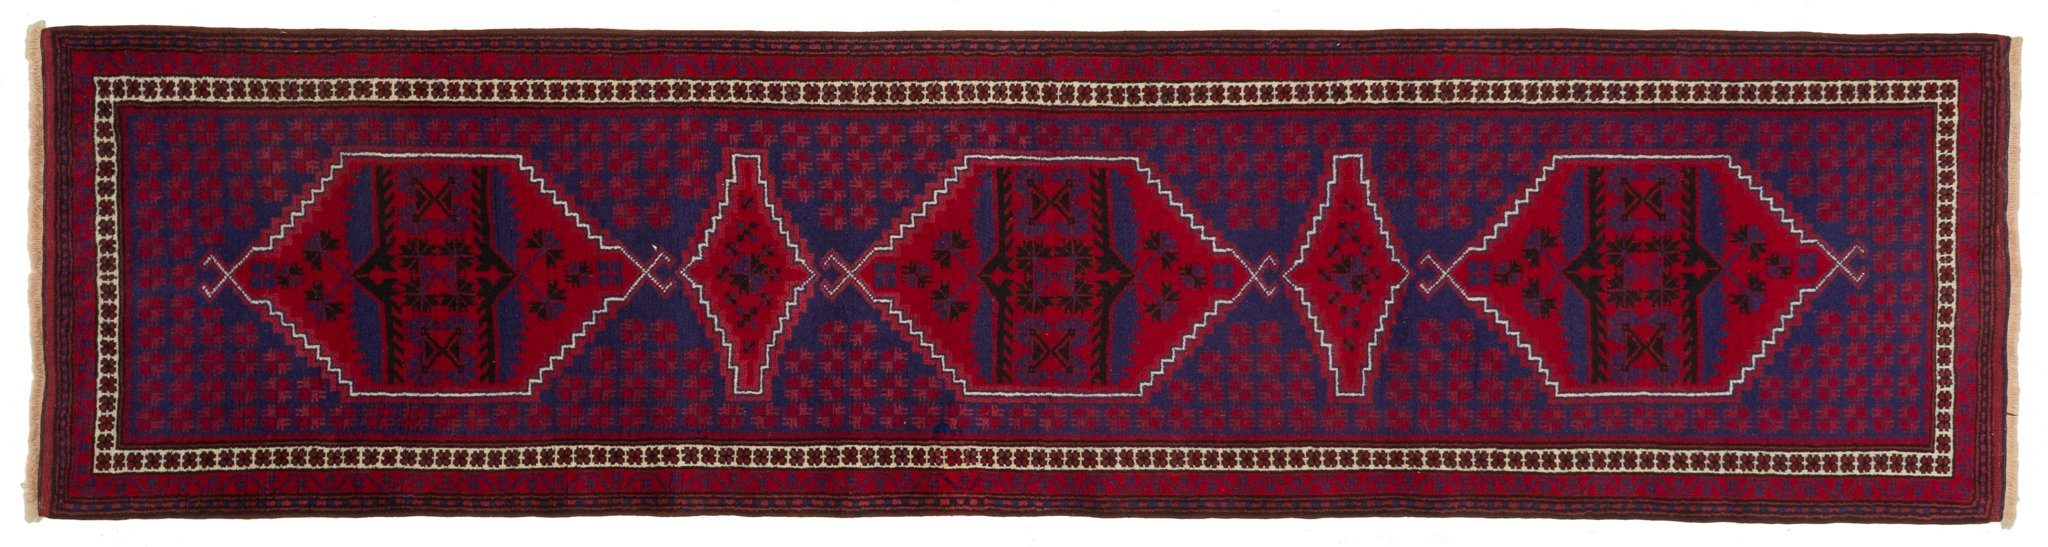 Vintage Turkish Runner Rug Alick